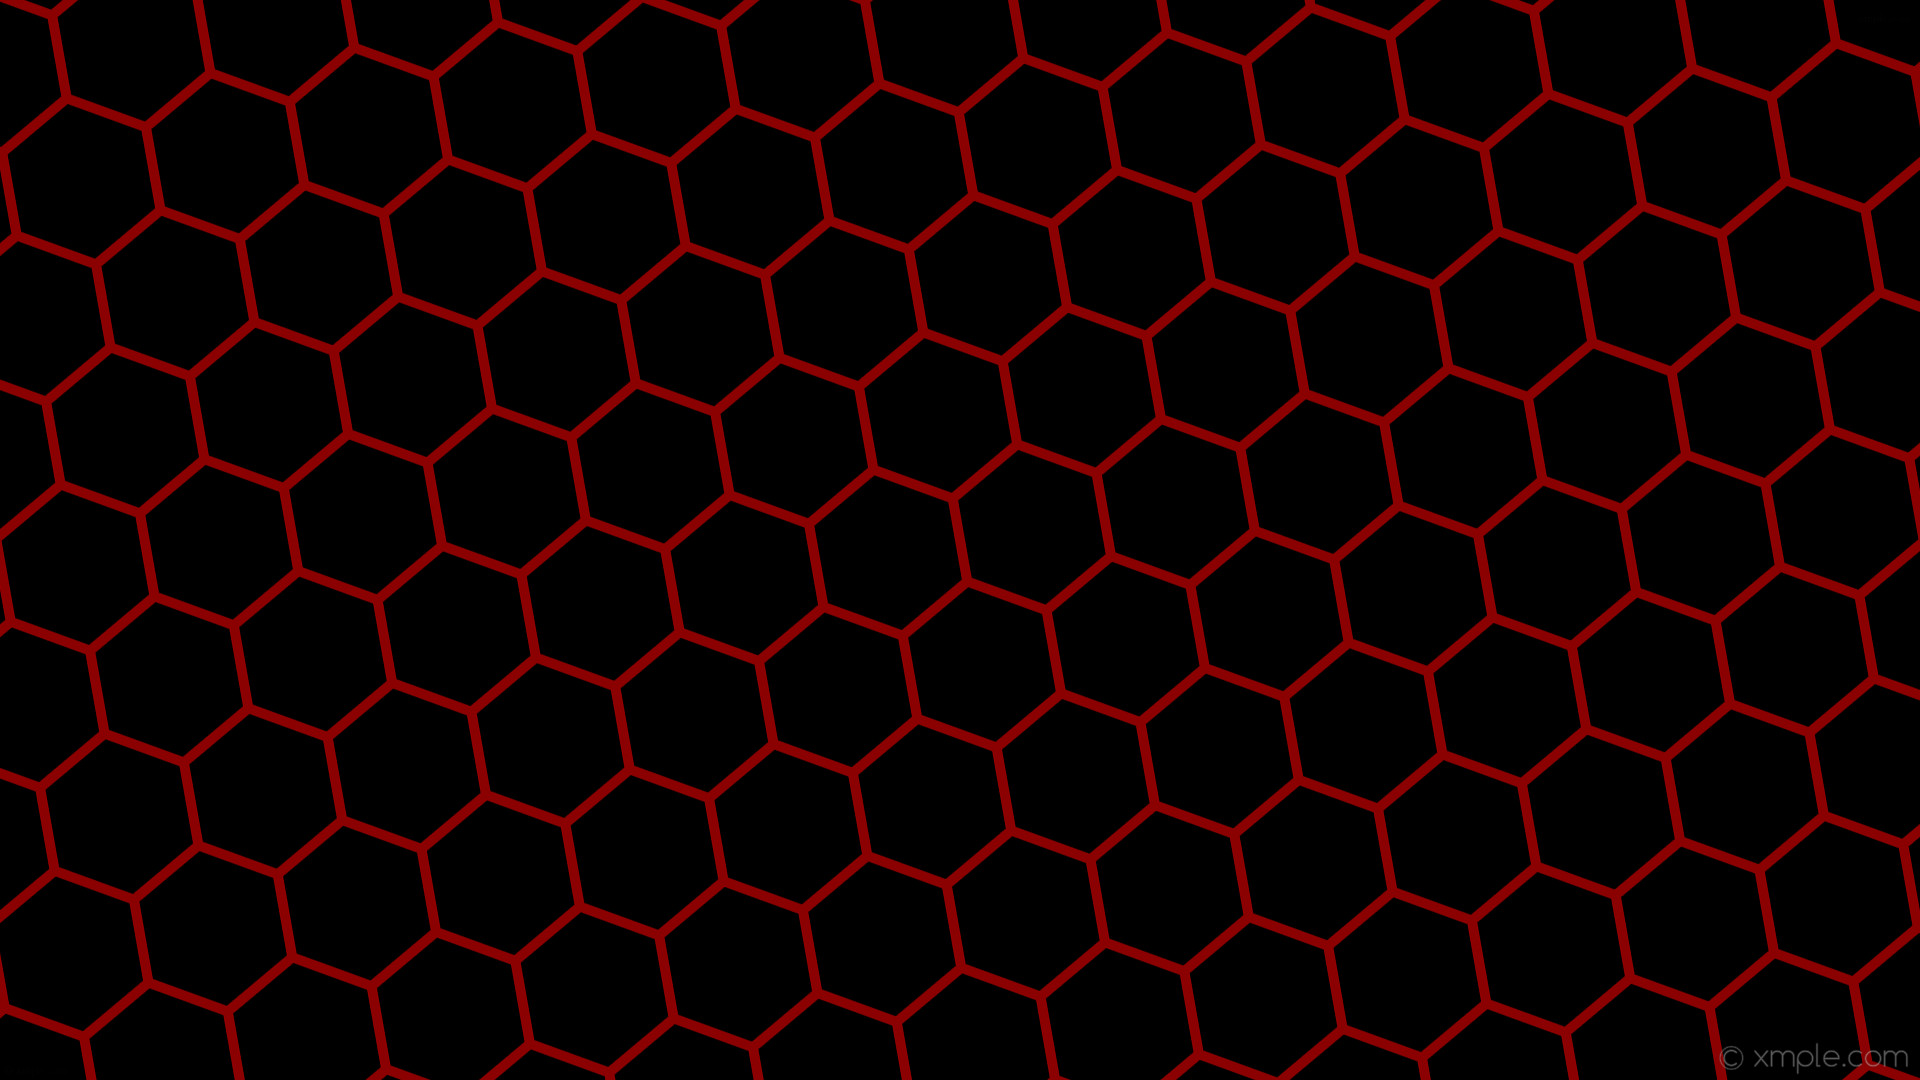 Wallpapers HD Black And Red Group (91 )